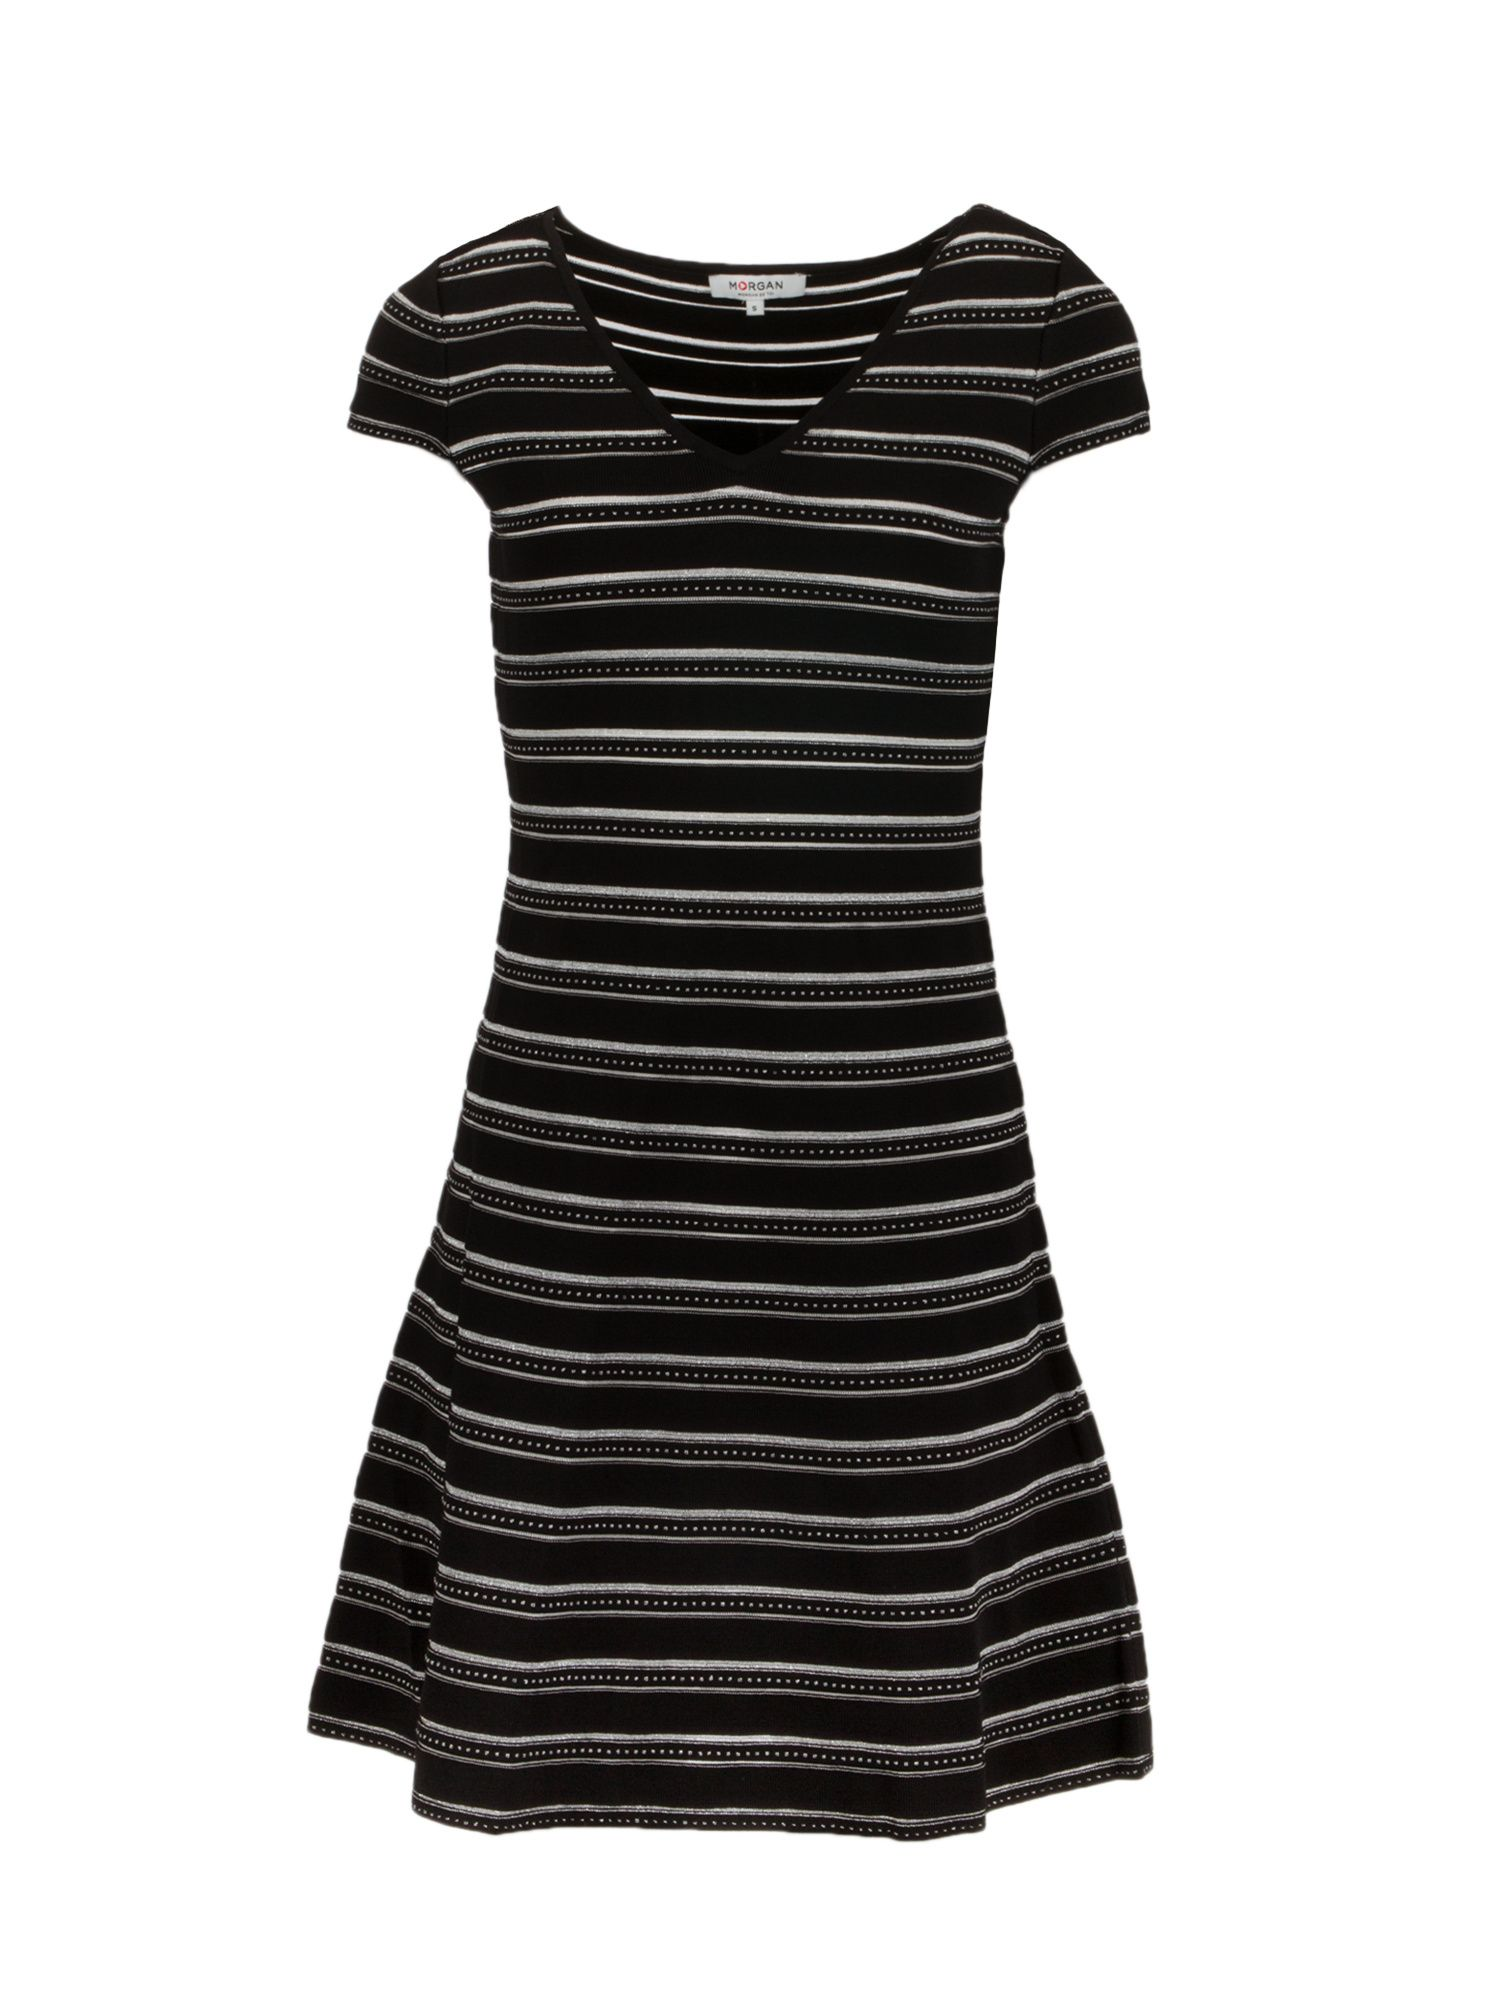 Morgan Flared Knit Dress With Metallic Threads, Black